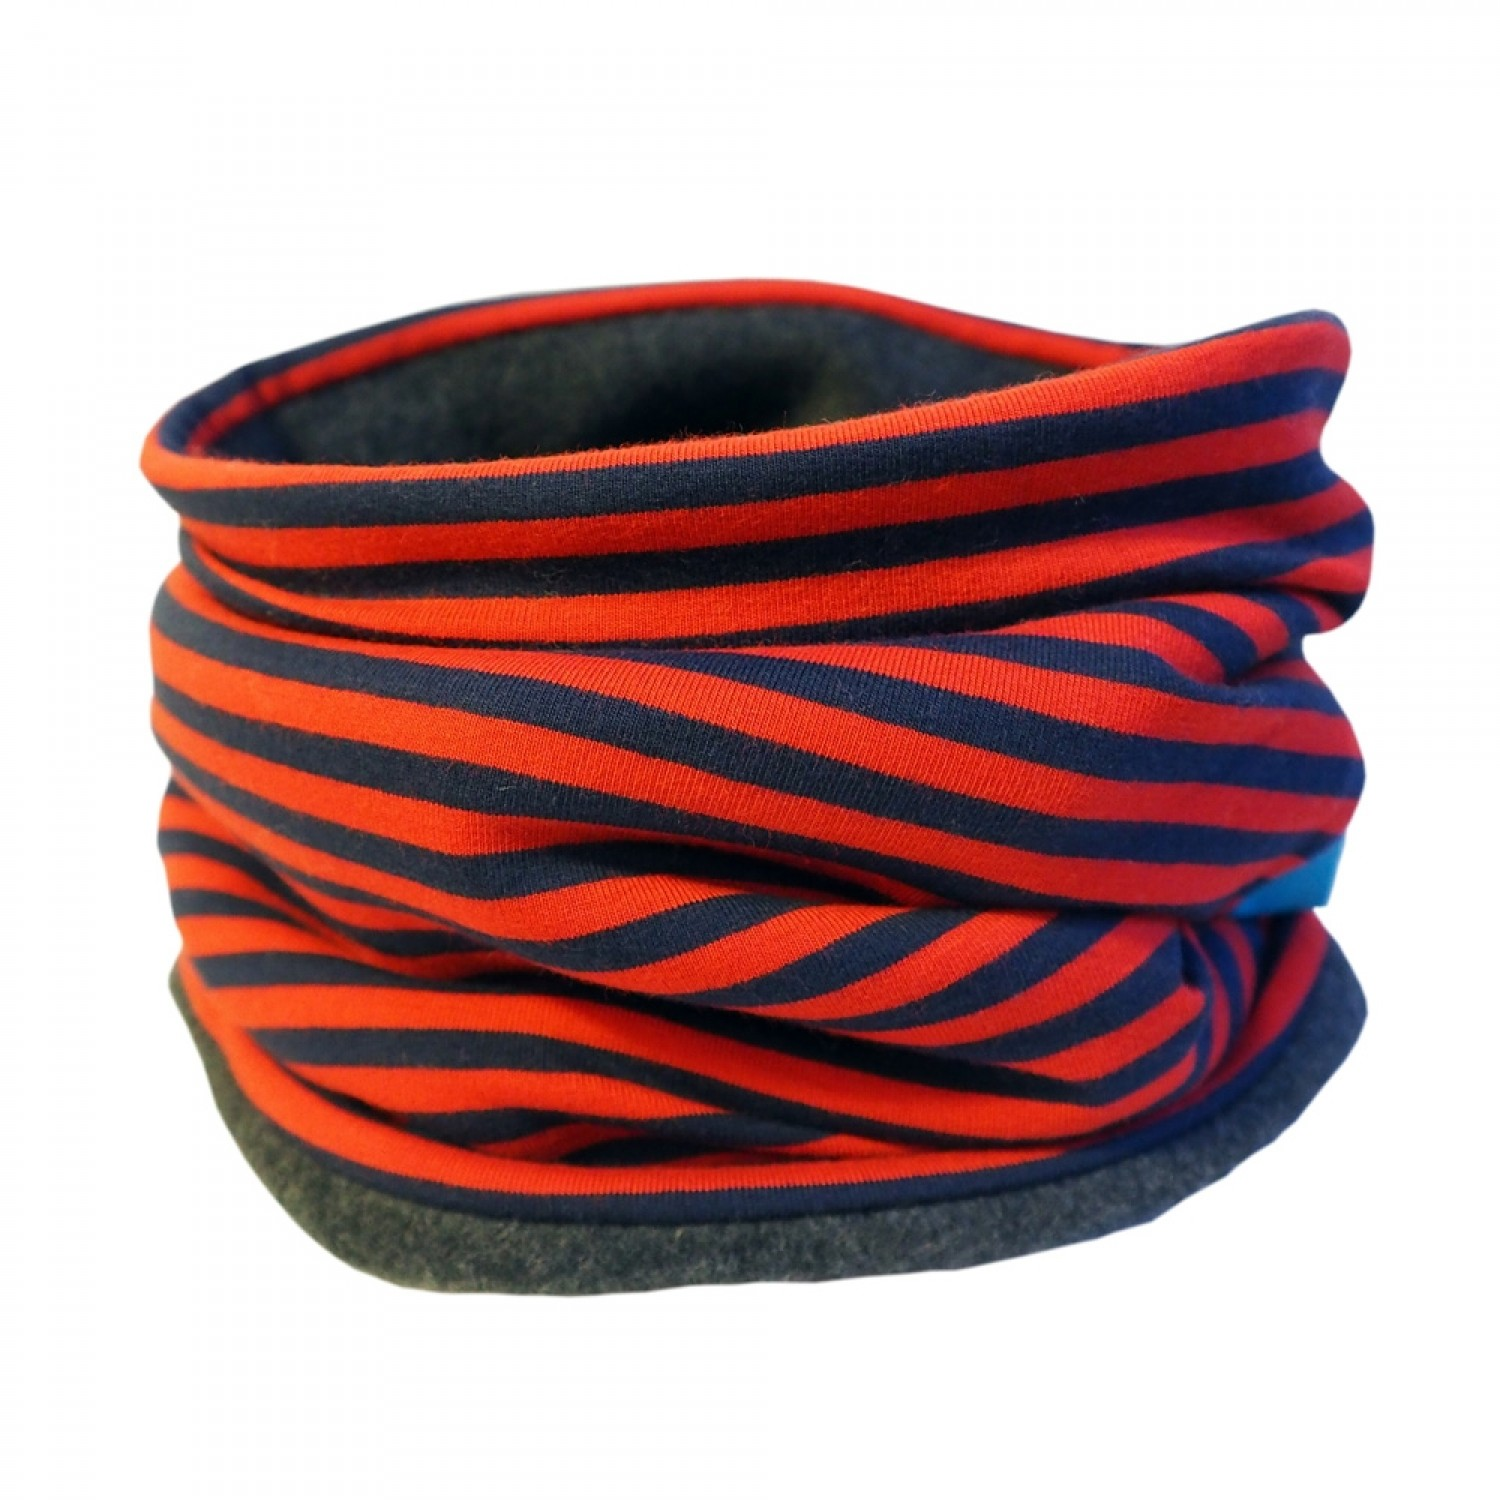 Winter Loop Scarf Eco Cotton Jersey/Fleece Navy/Red ringed